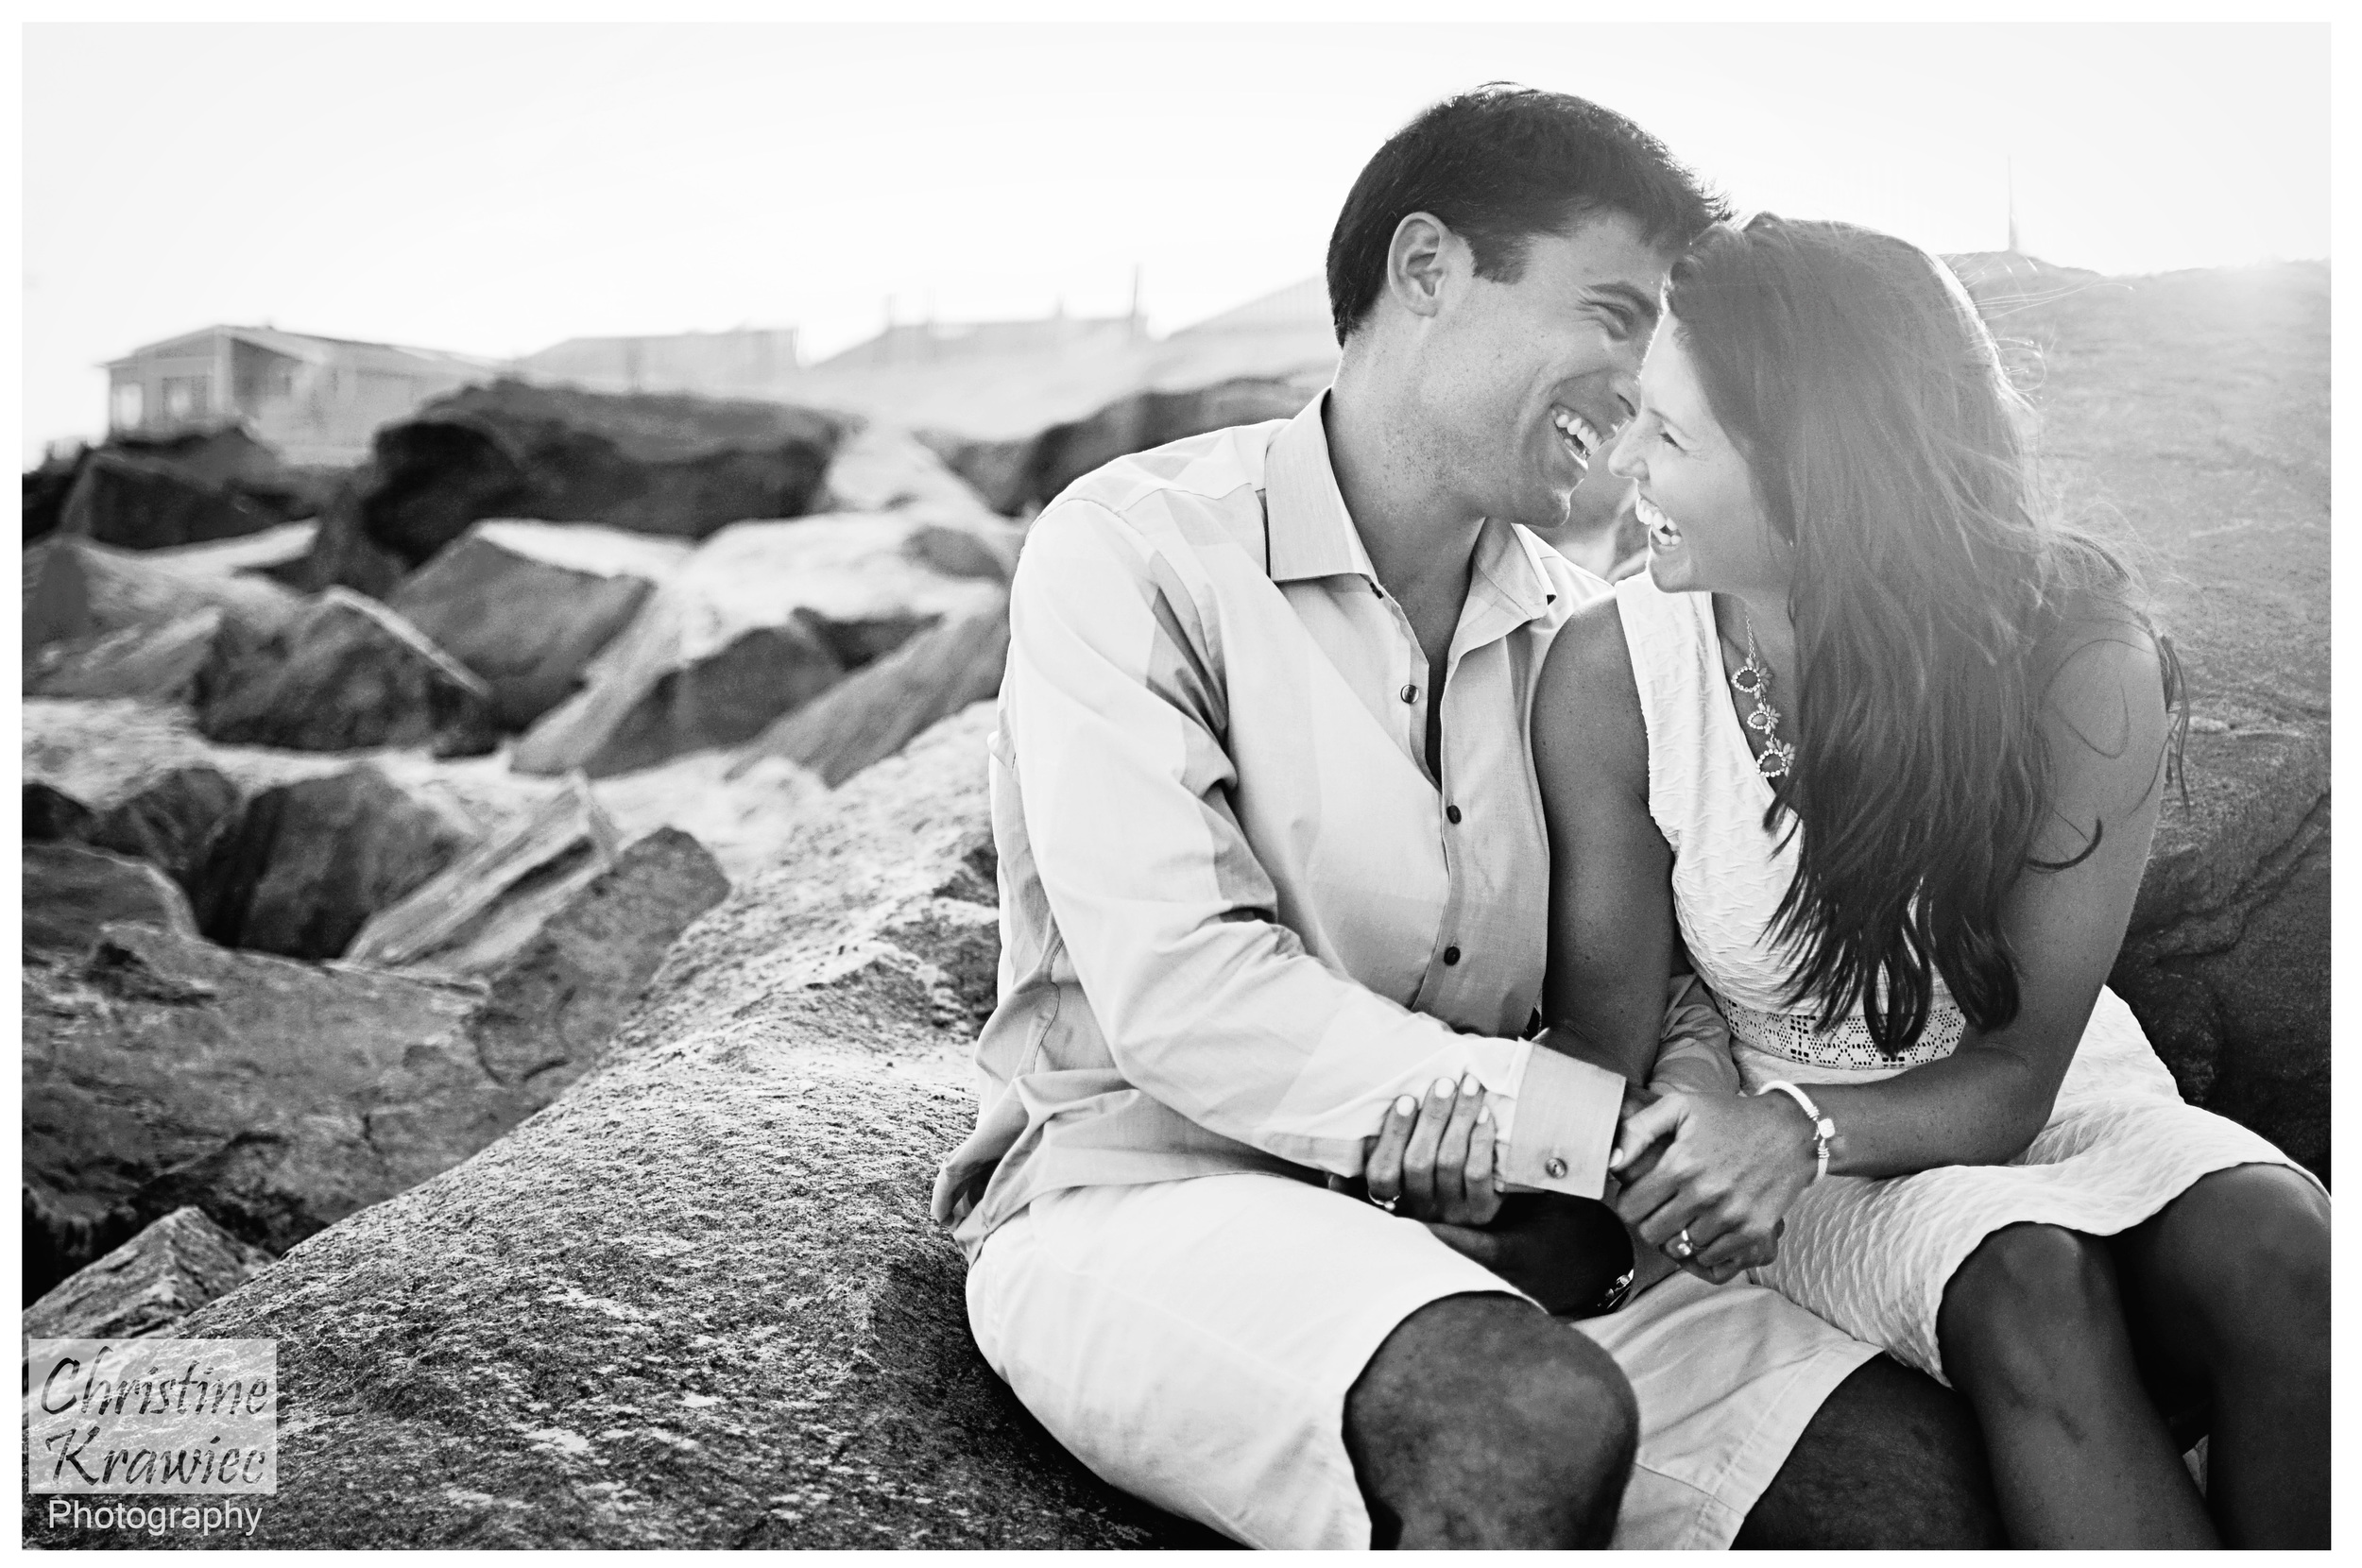 Christine Krawiec Photography - Ocean City Engagement Photographer